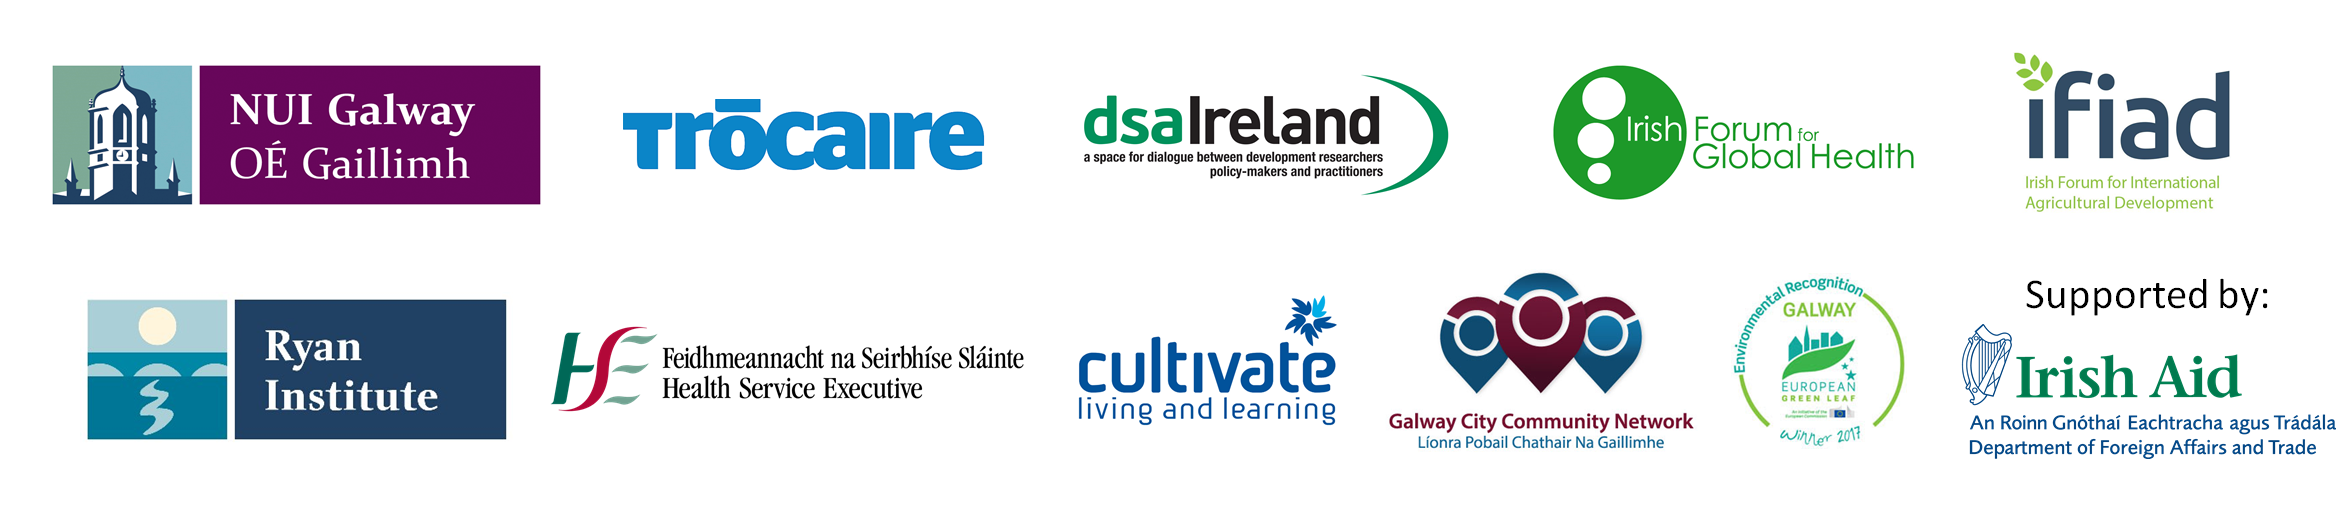 Logos of partners for Climate Change conference